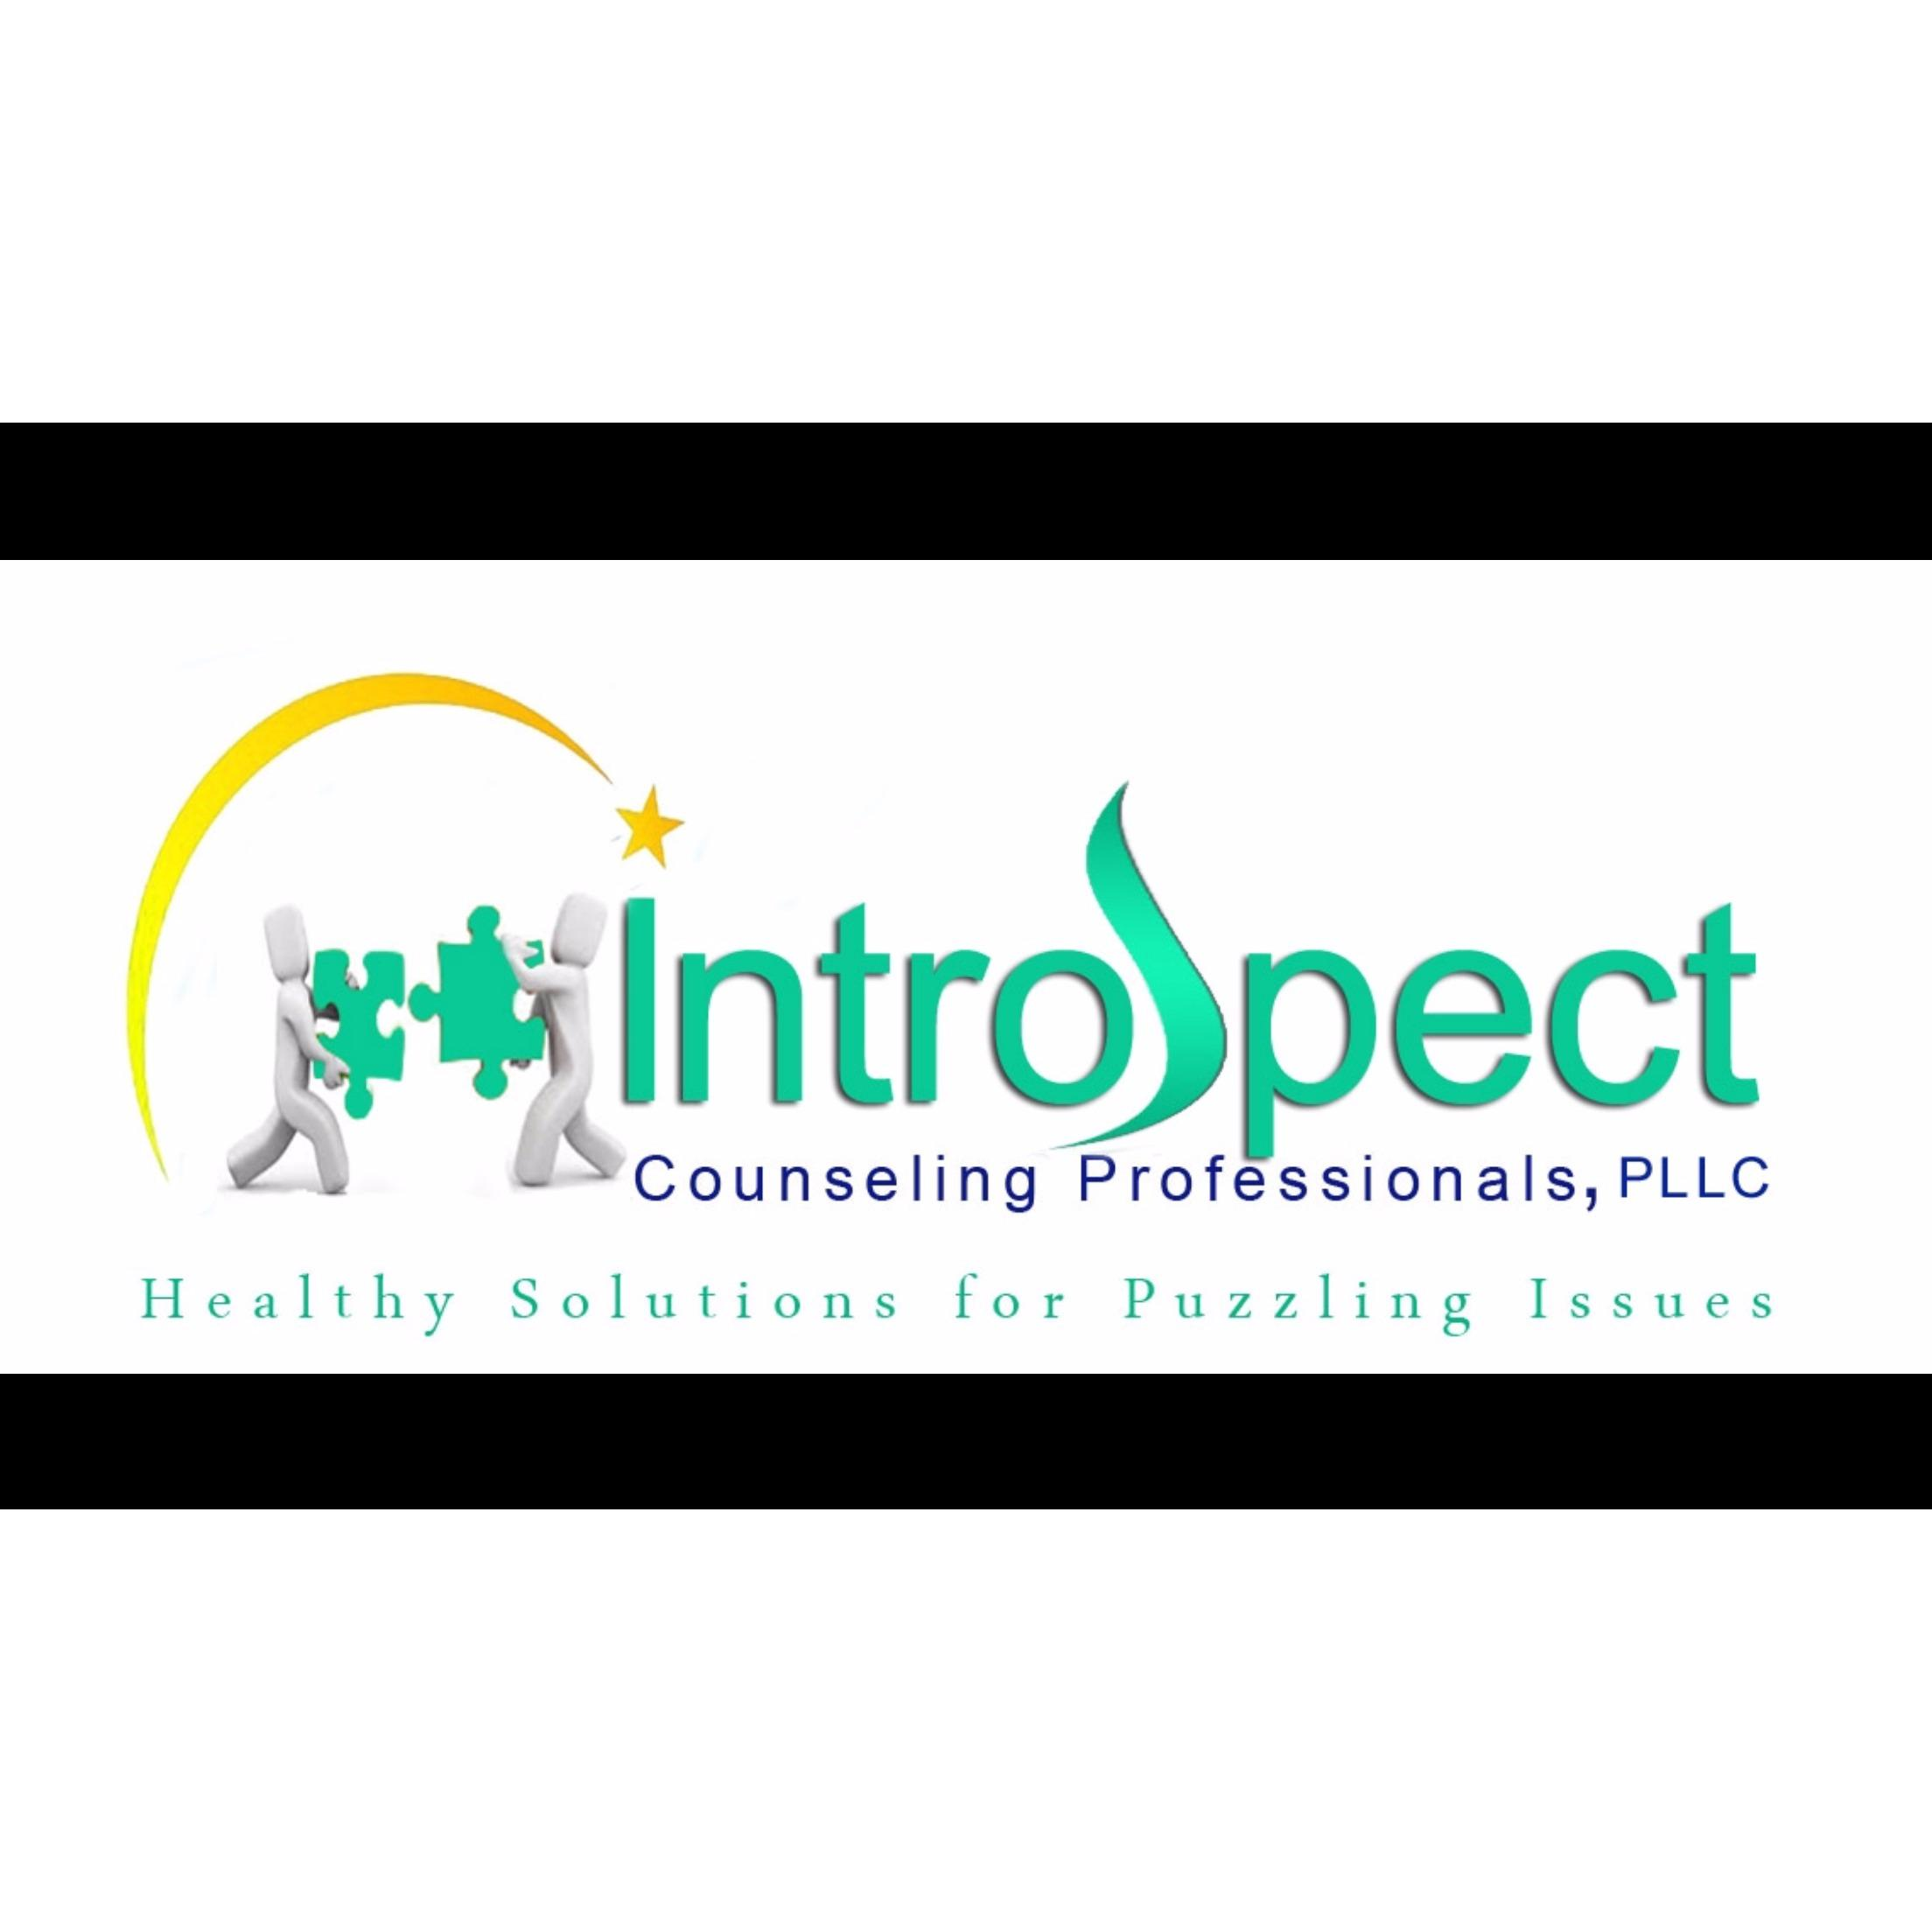 Introspect Counseling Professionals